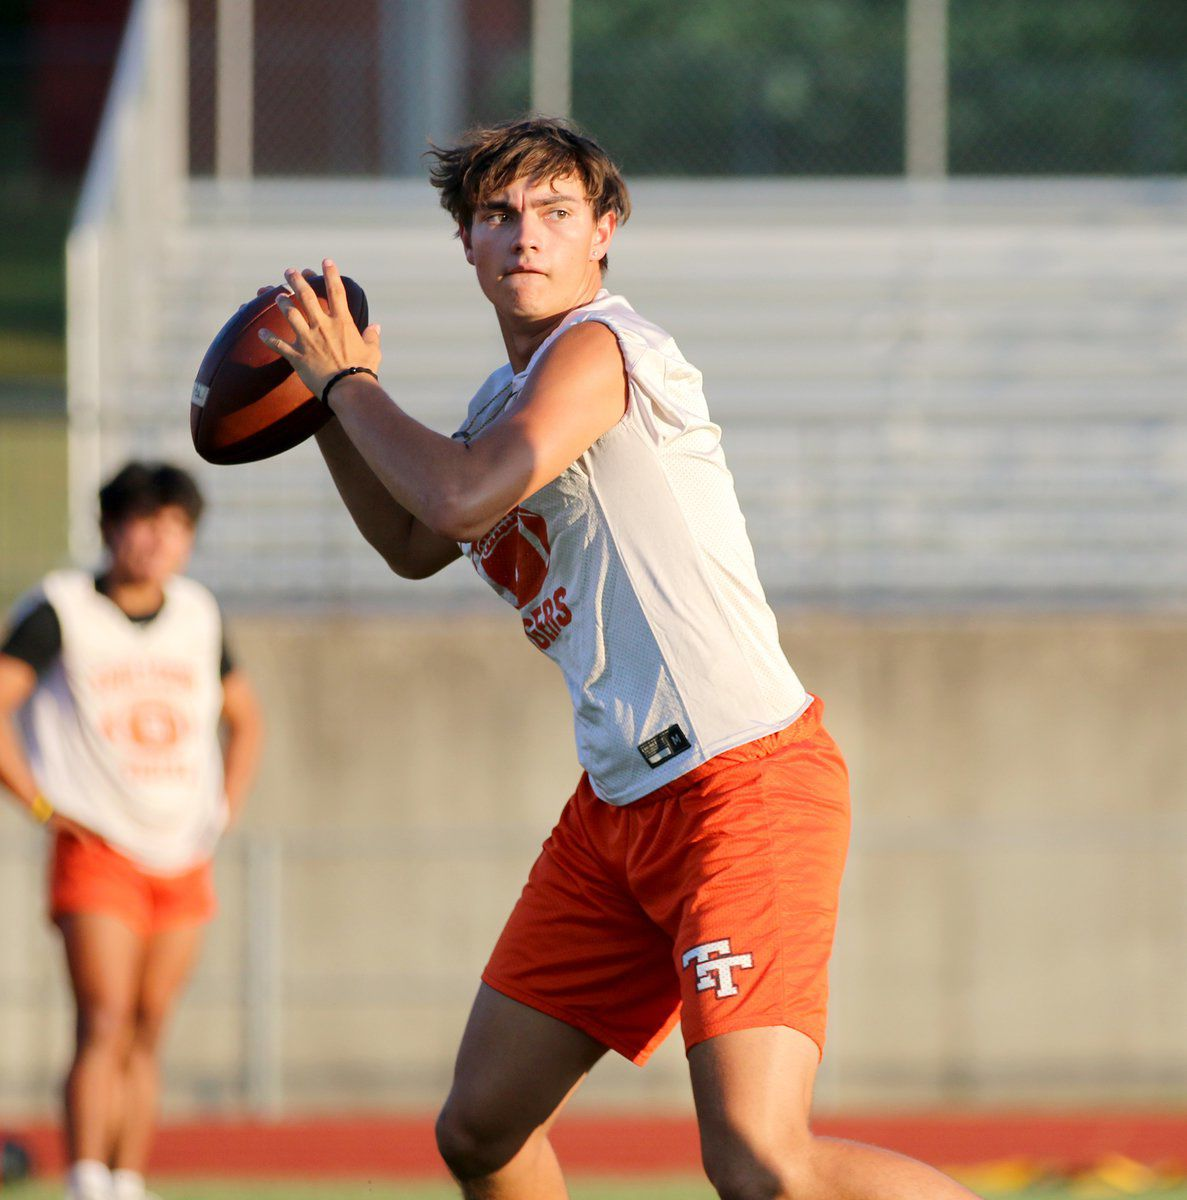 Tigers hold first practice Monday evening